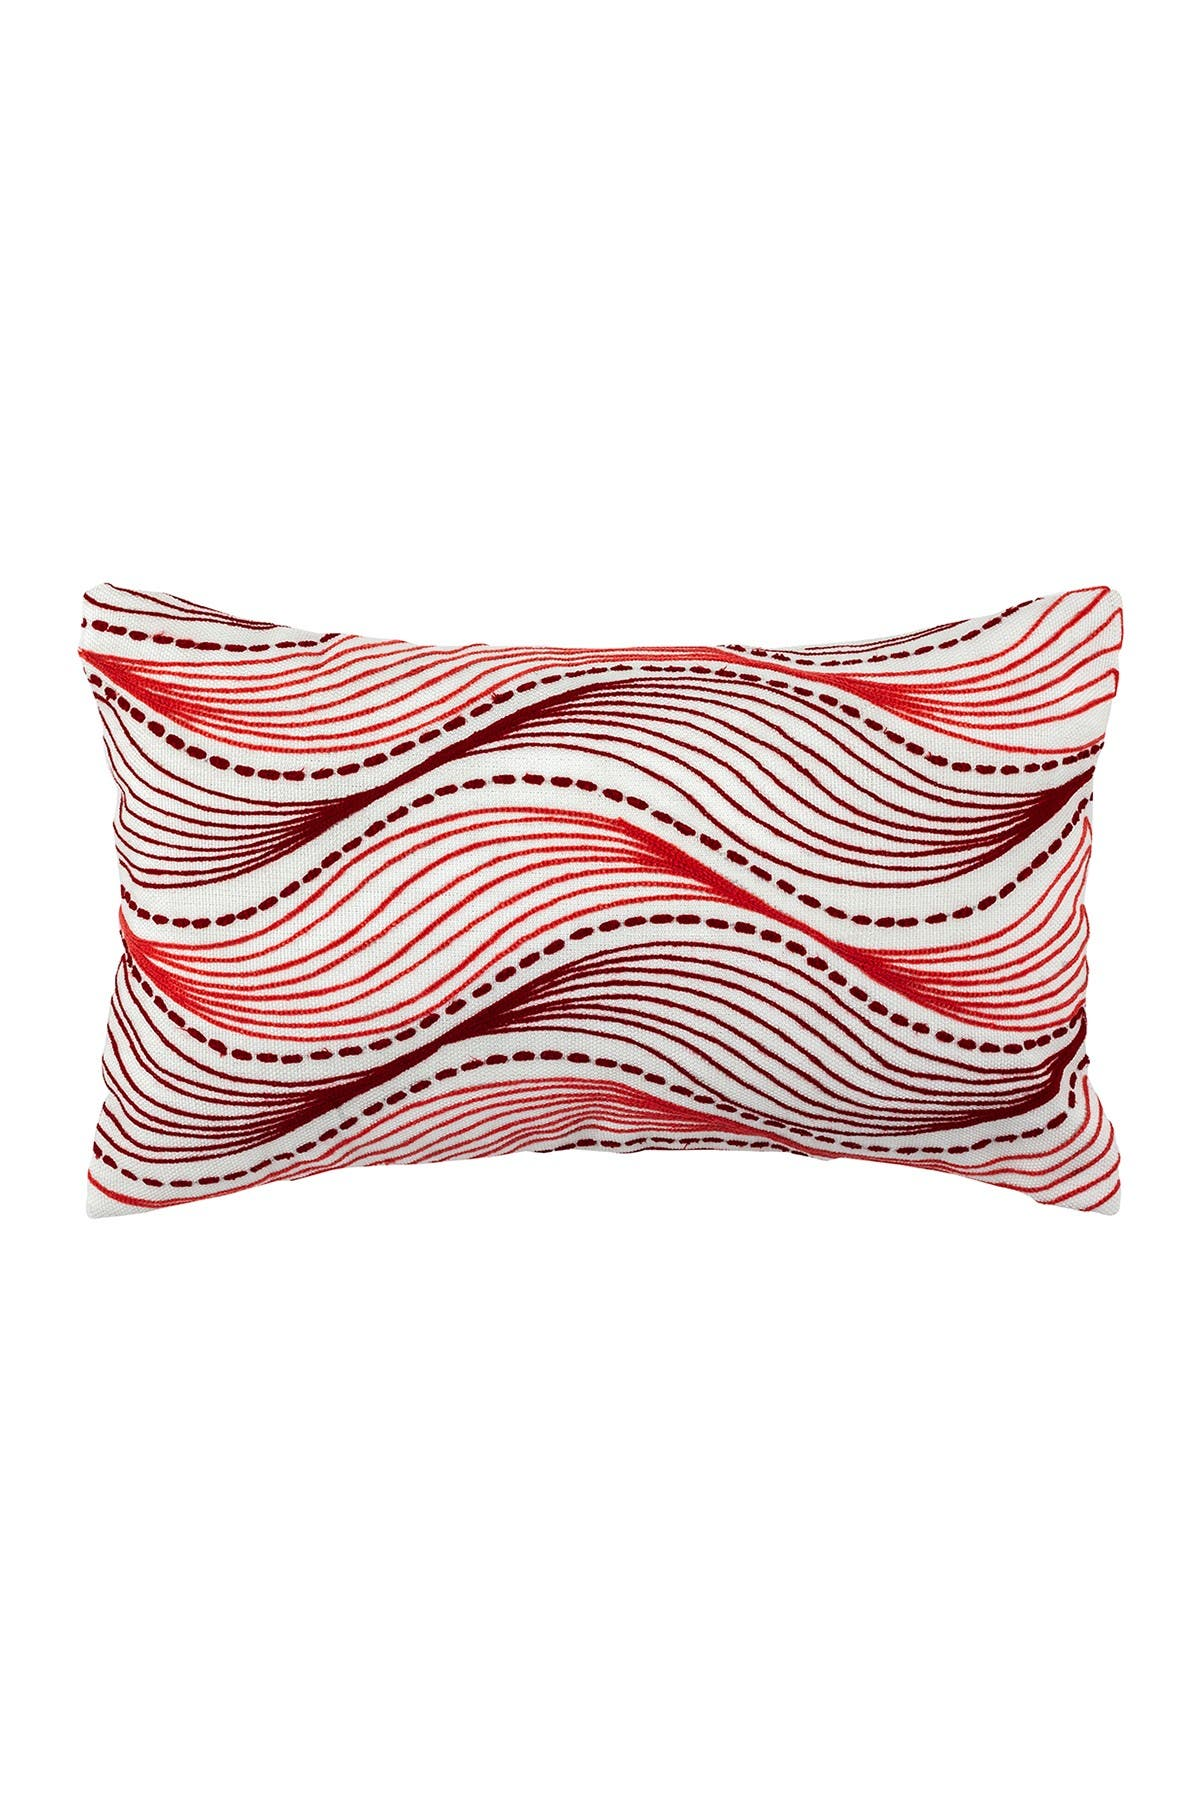 "Image of DIVINE HOME Embroidered Waves Outdoor Pillow - 12"" x 20"" - Red/Pink"